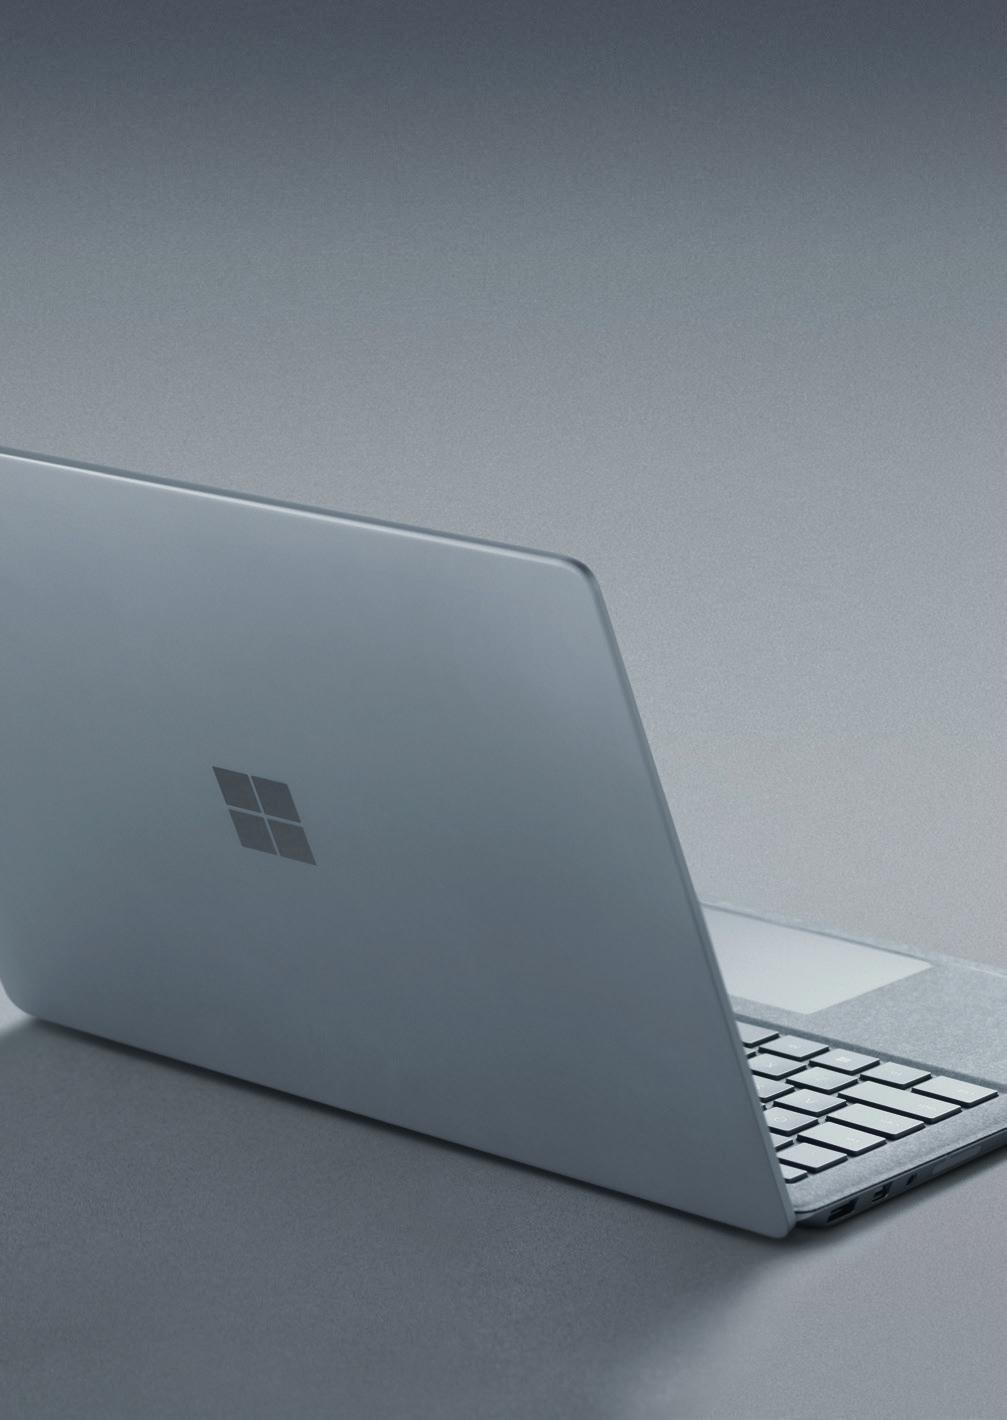 Instore Windows Surface Book Toolkit Surface Laptop Performance voor jou persoonlijk.